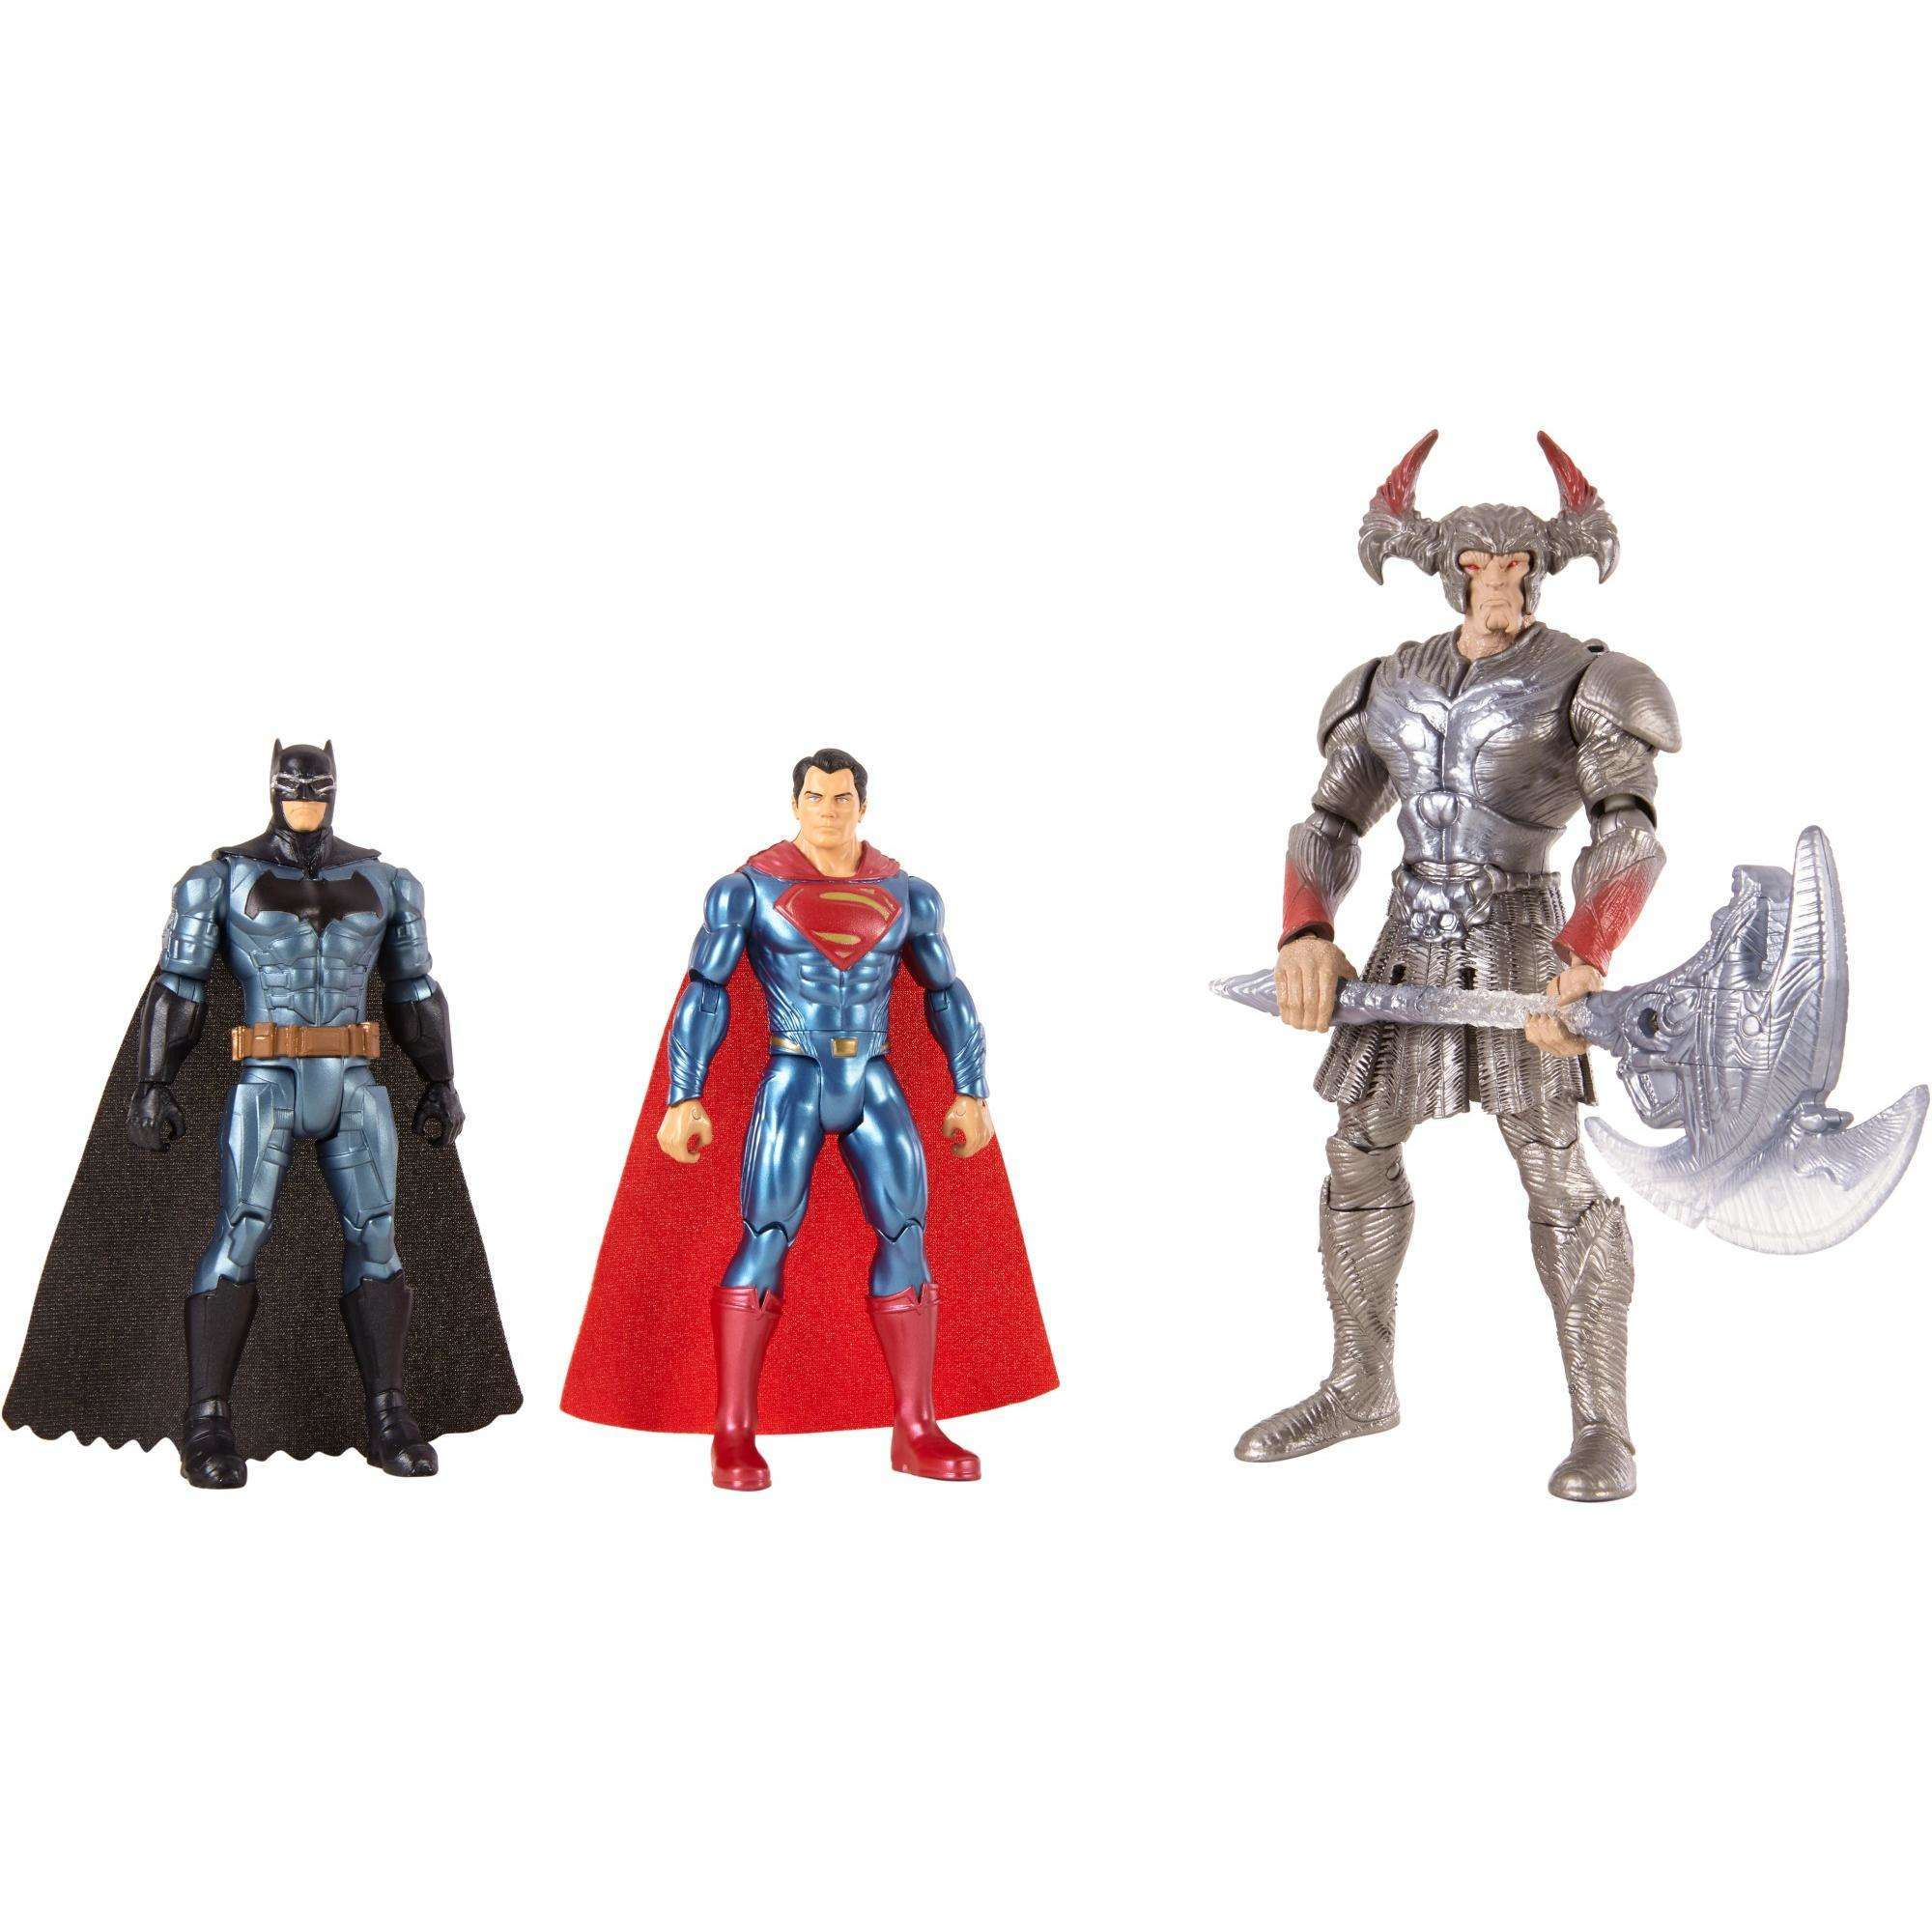 DC Justice League Batman, Steppenwolf, Superman 3-Pack Figures